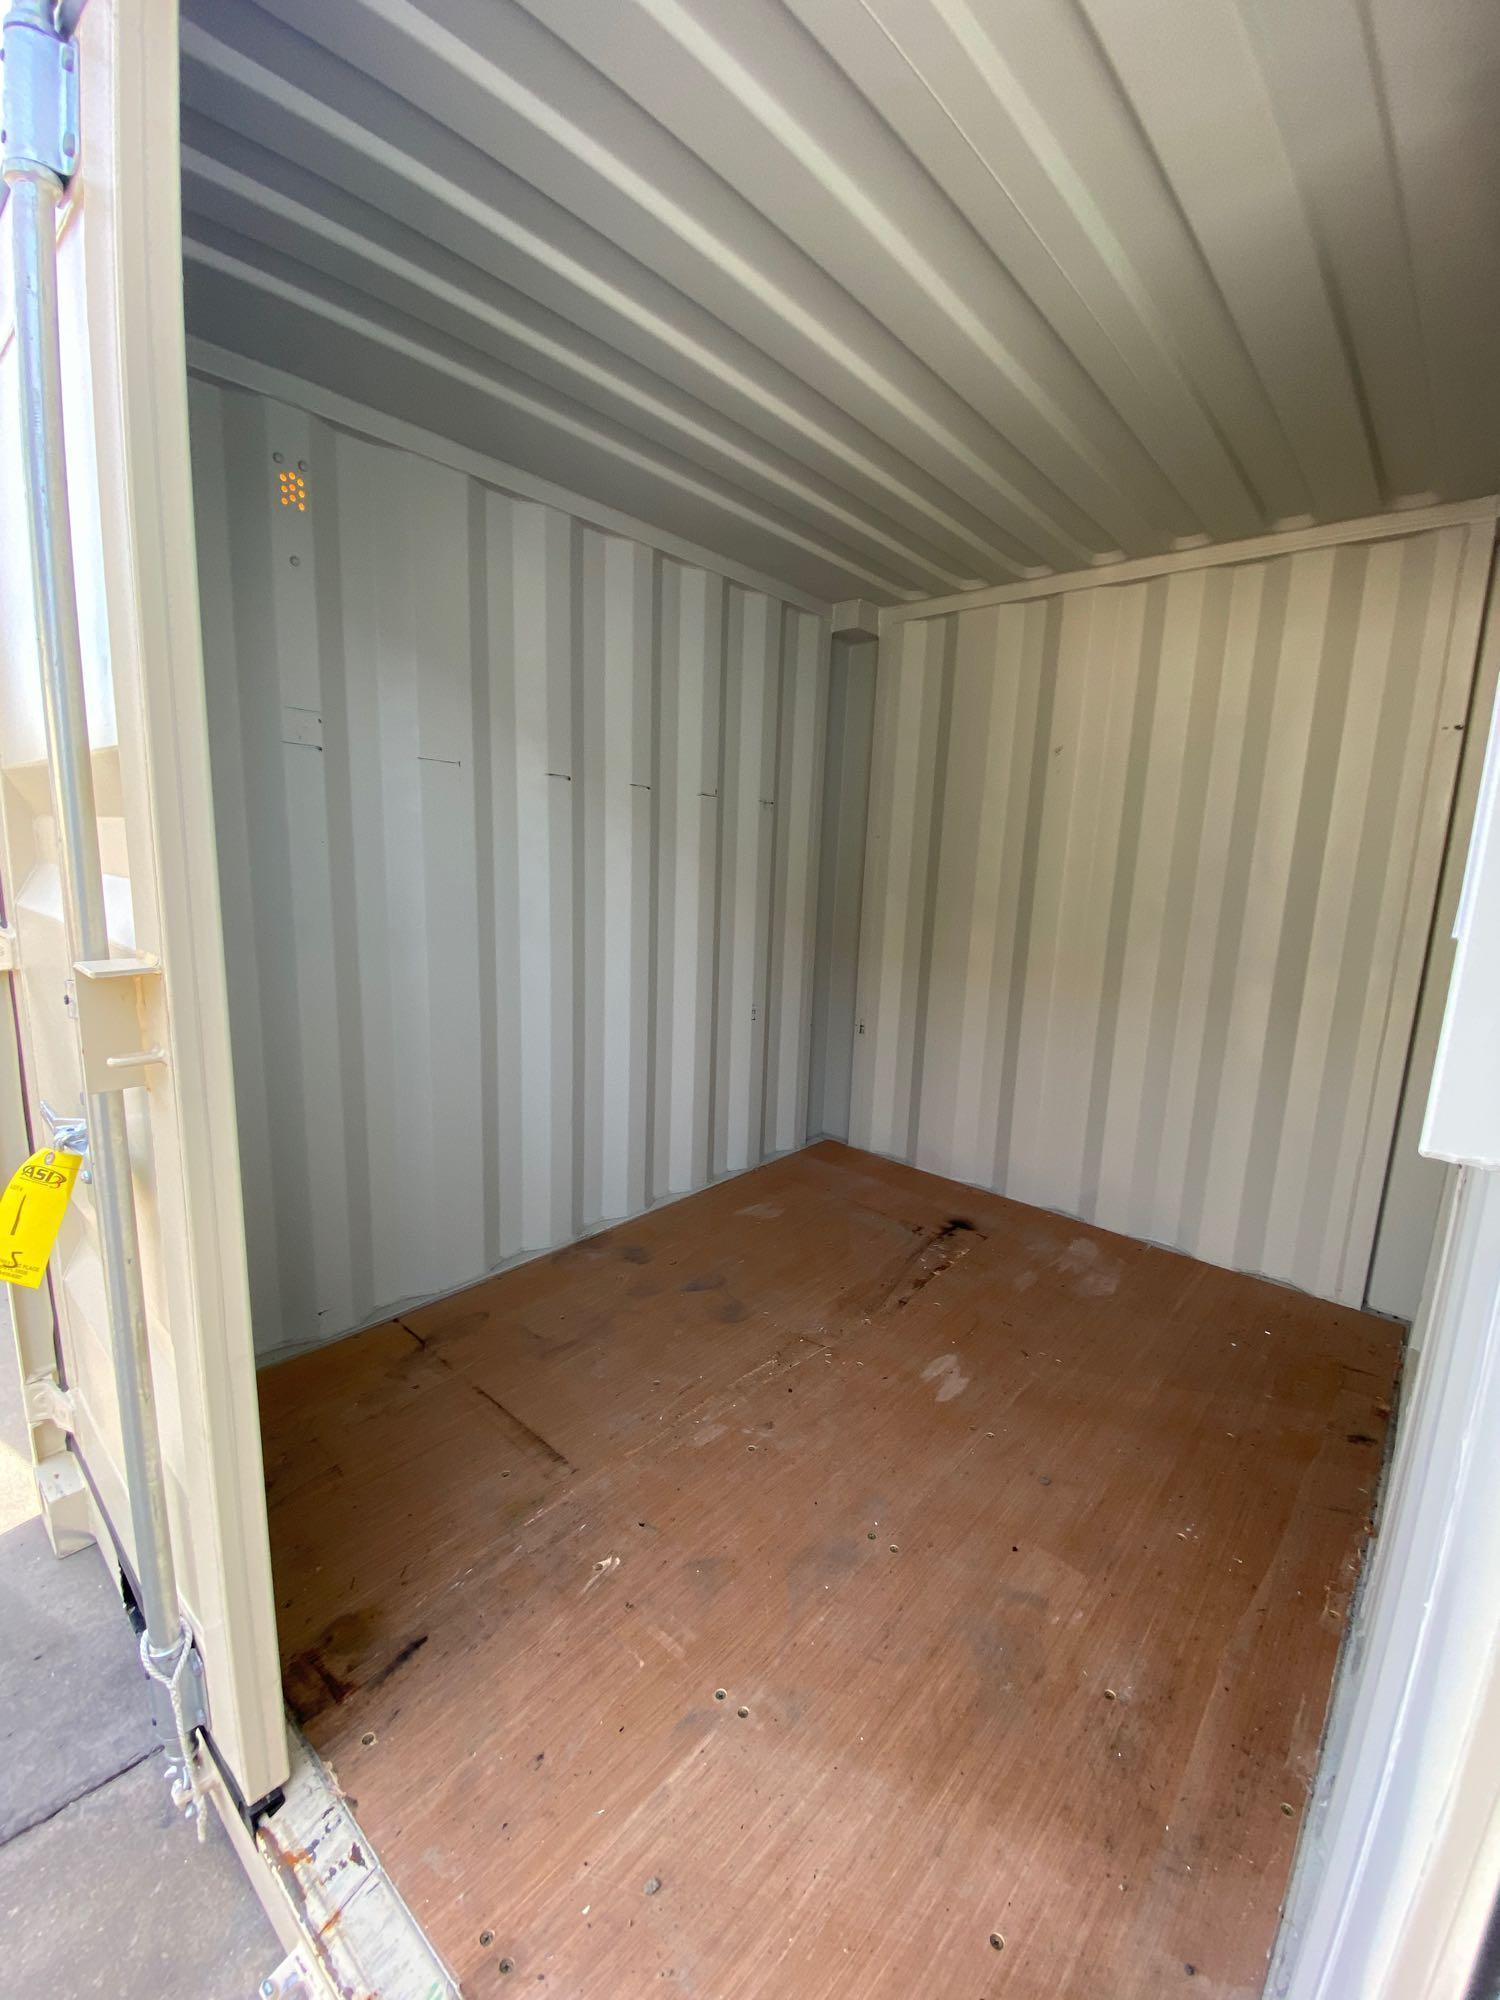 """UNUSED PORTABLE OFFICE/STORAGE CONTAINER WITH WINDOW AND SIDE DOOR, APPROX 77""""w 84""""t 98"""" deep - Image 6 of 6"""